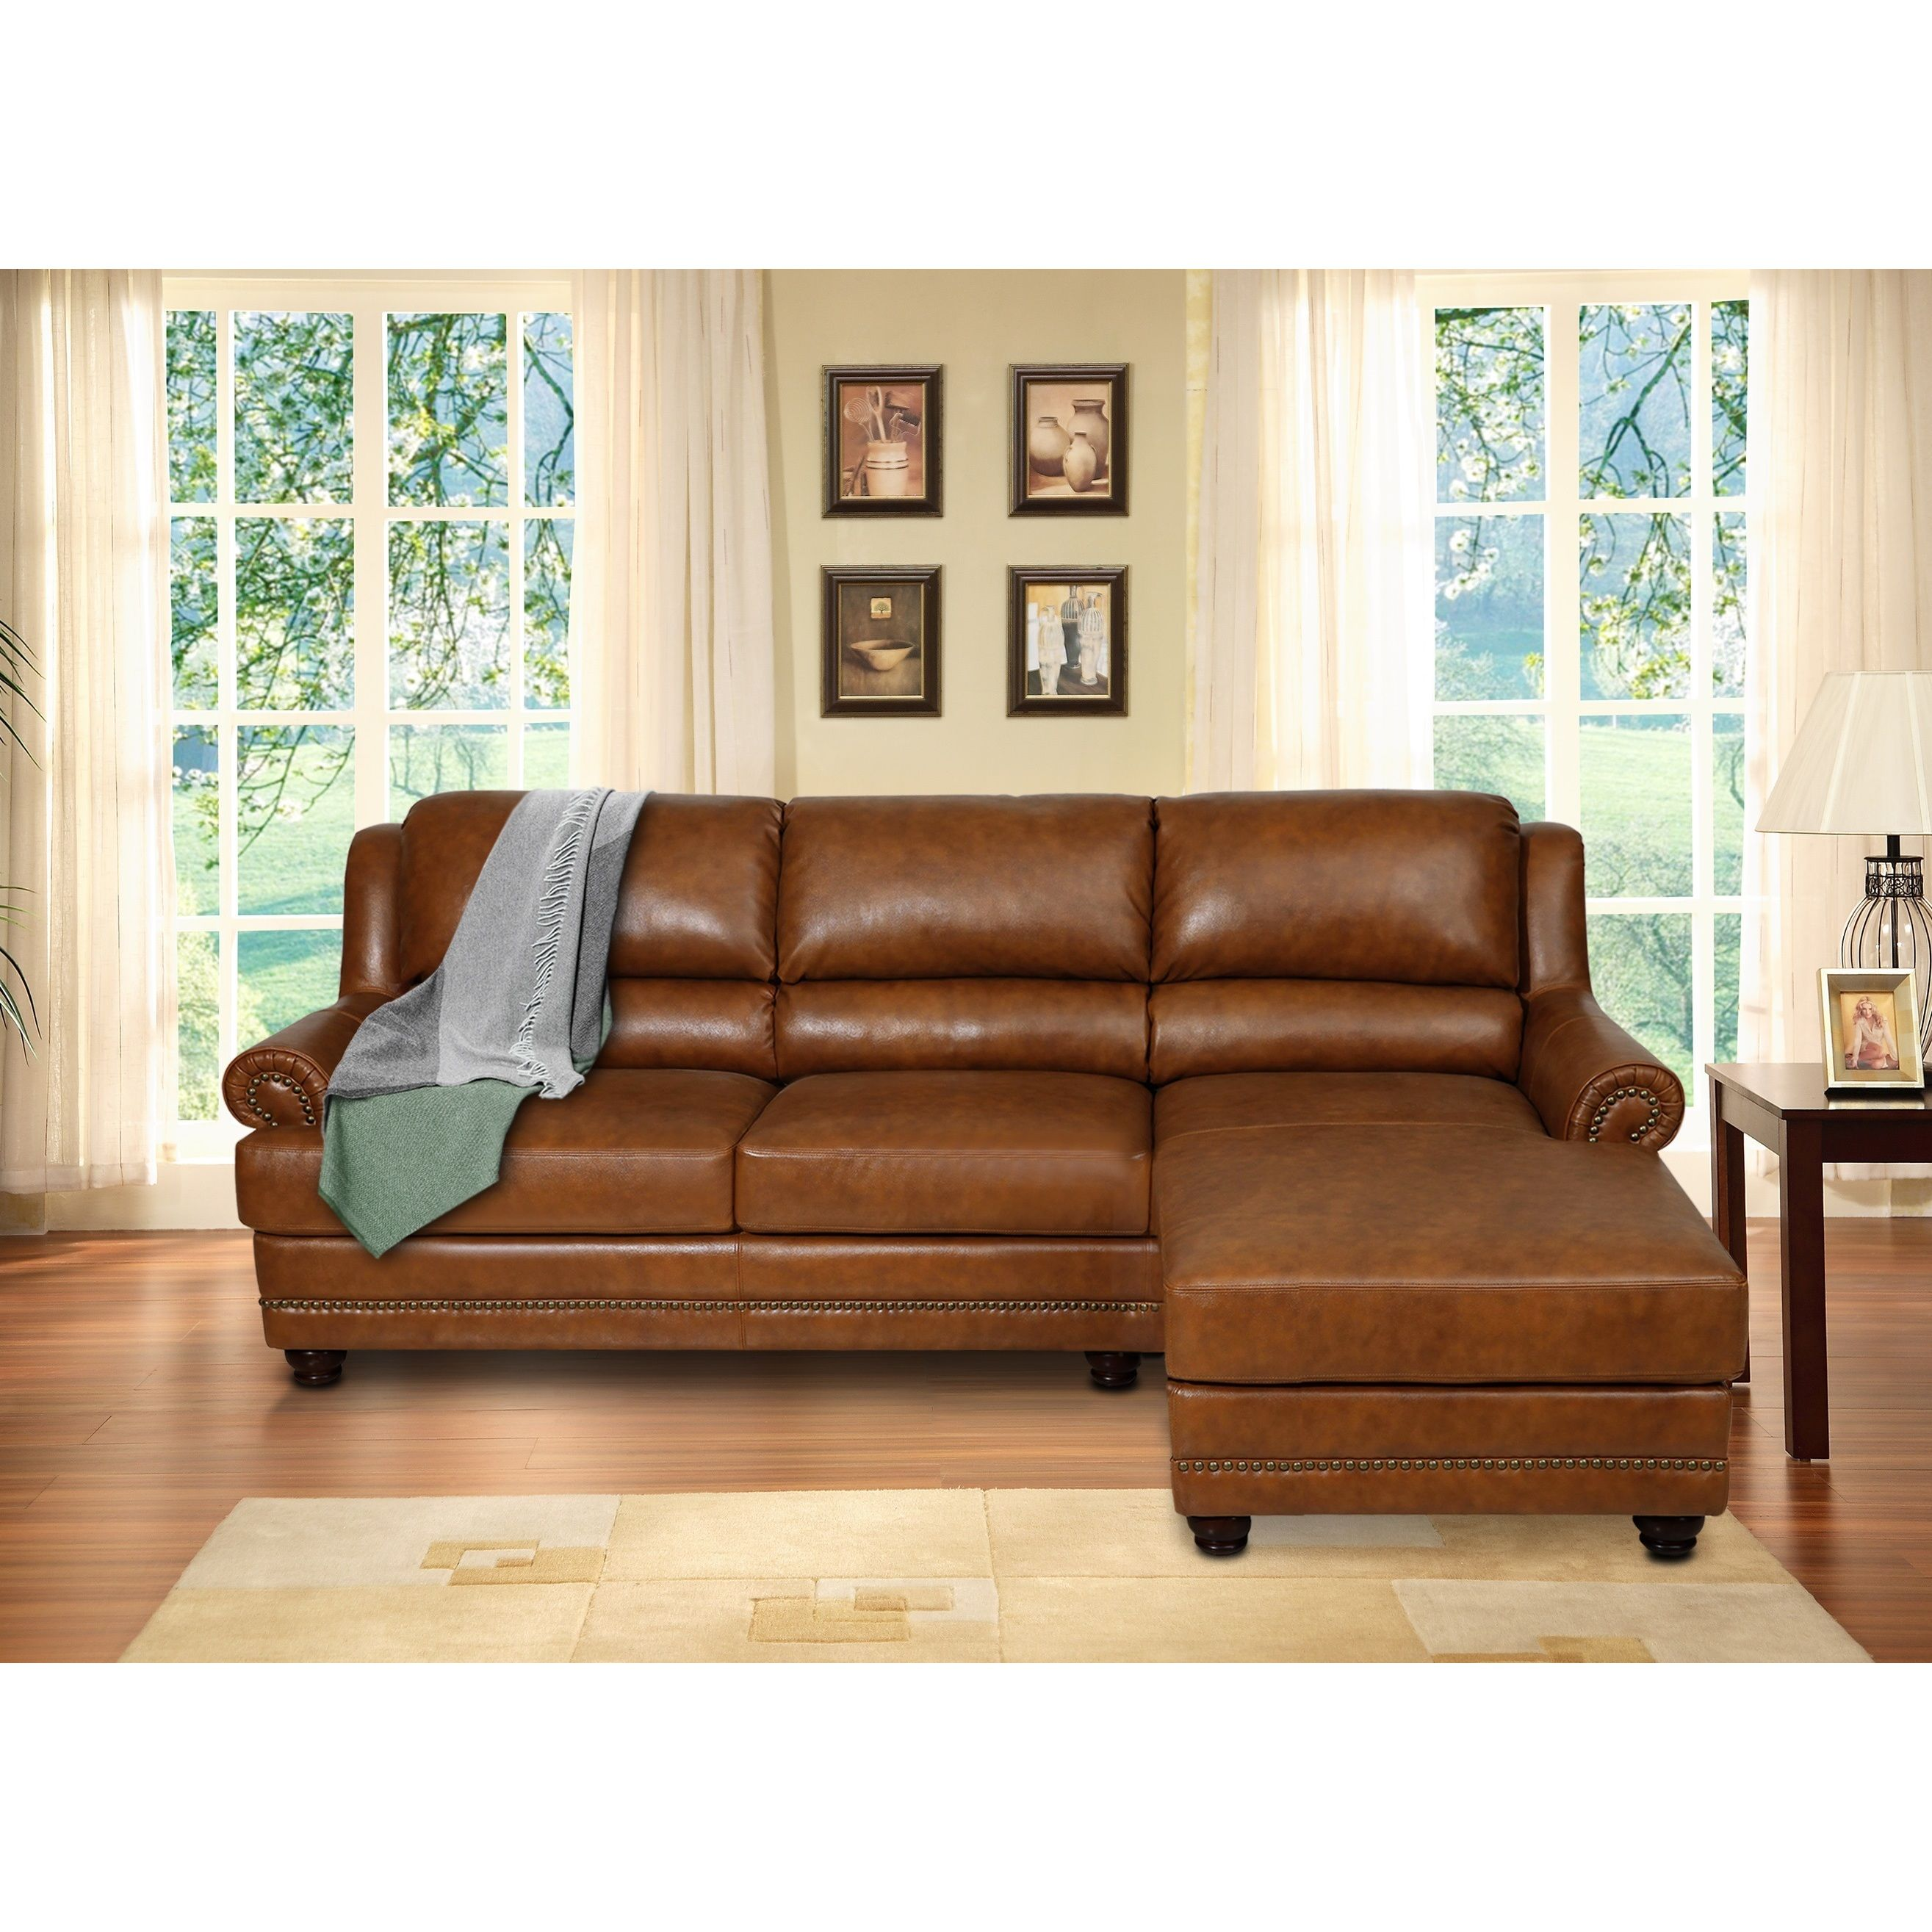 Quality Sofa For Less This Luxurious And High Quality Leather Sectional Sofa